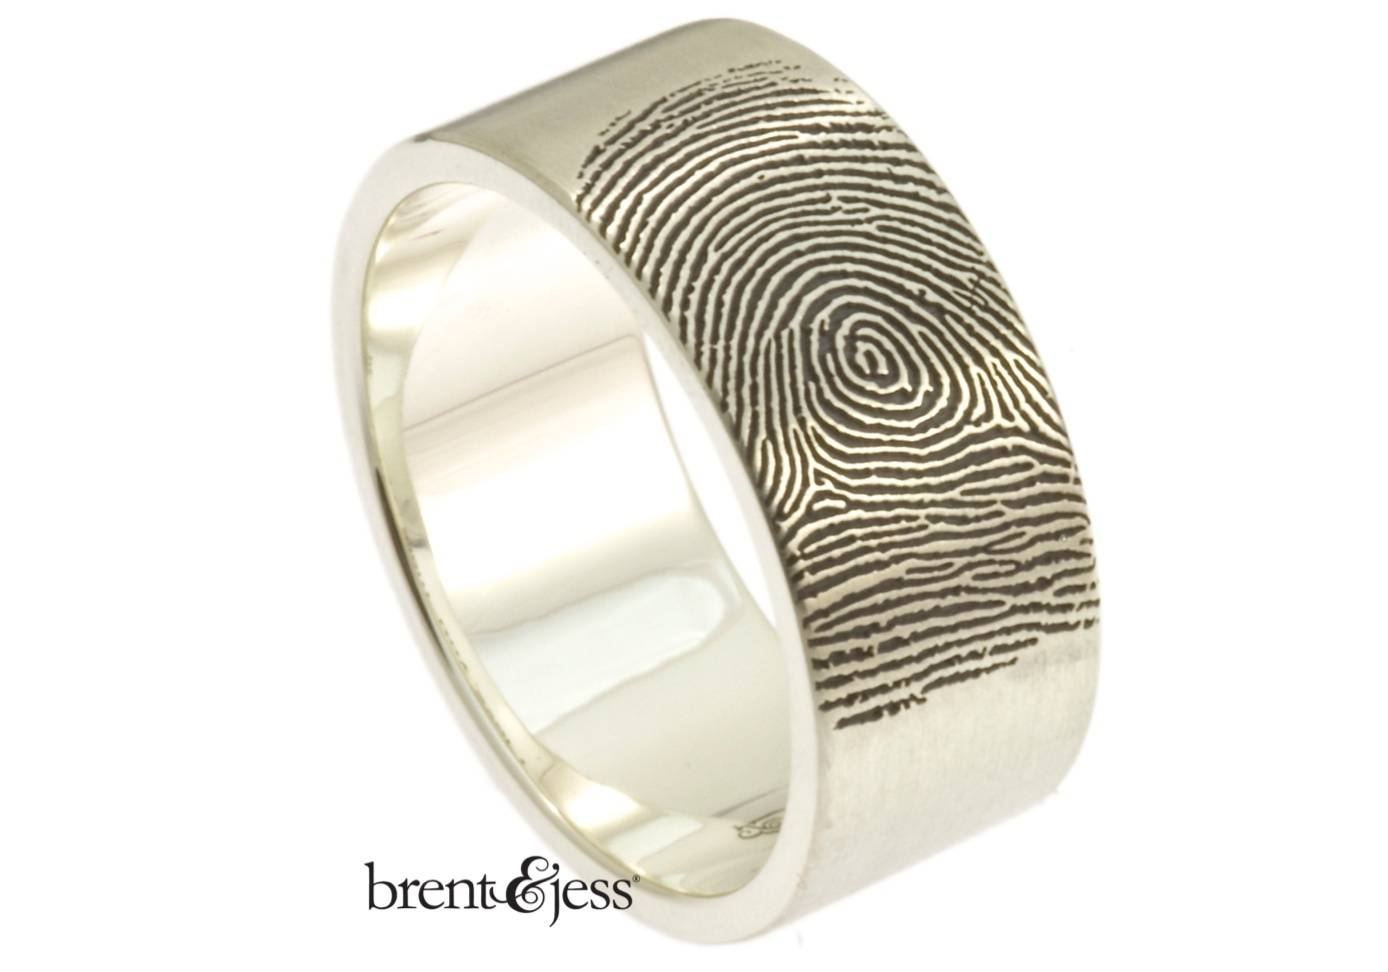 Modern Wedding Rings – Brent&jess Blog – A Spotlight On Our Pertaining To Masculine Wedding Rings (View 13 of 15)